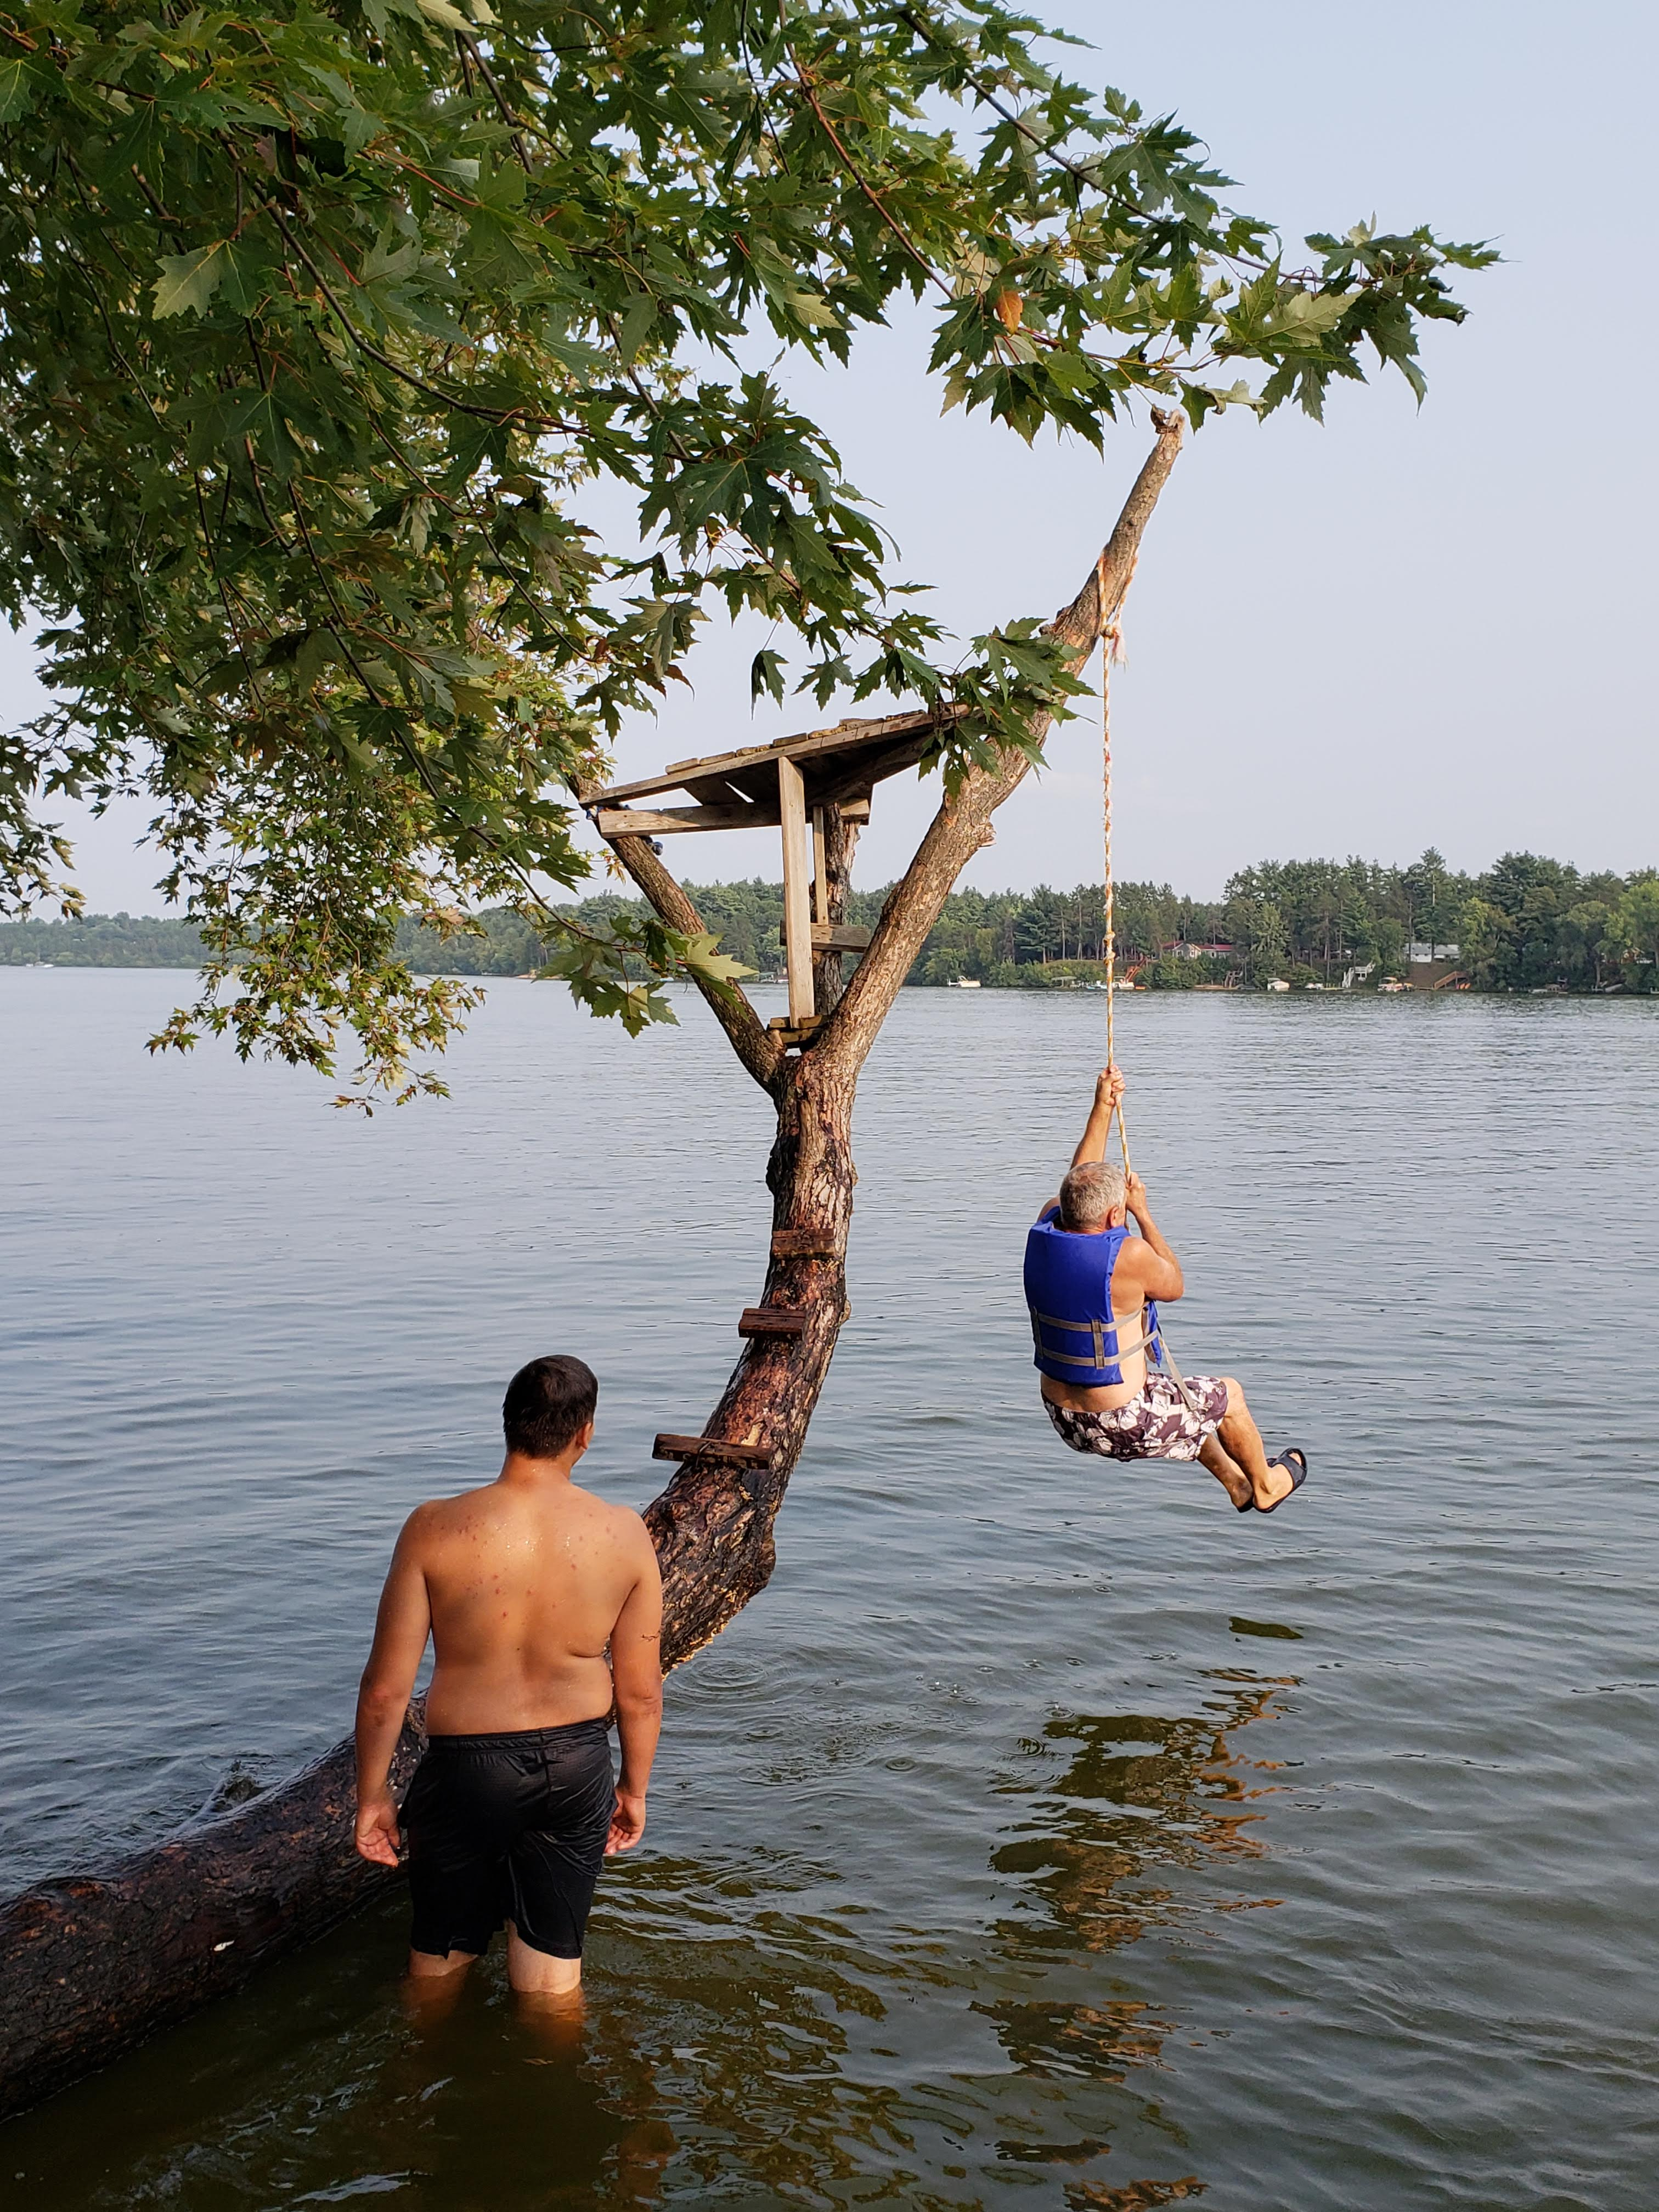 Rick and rope swing